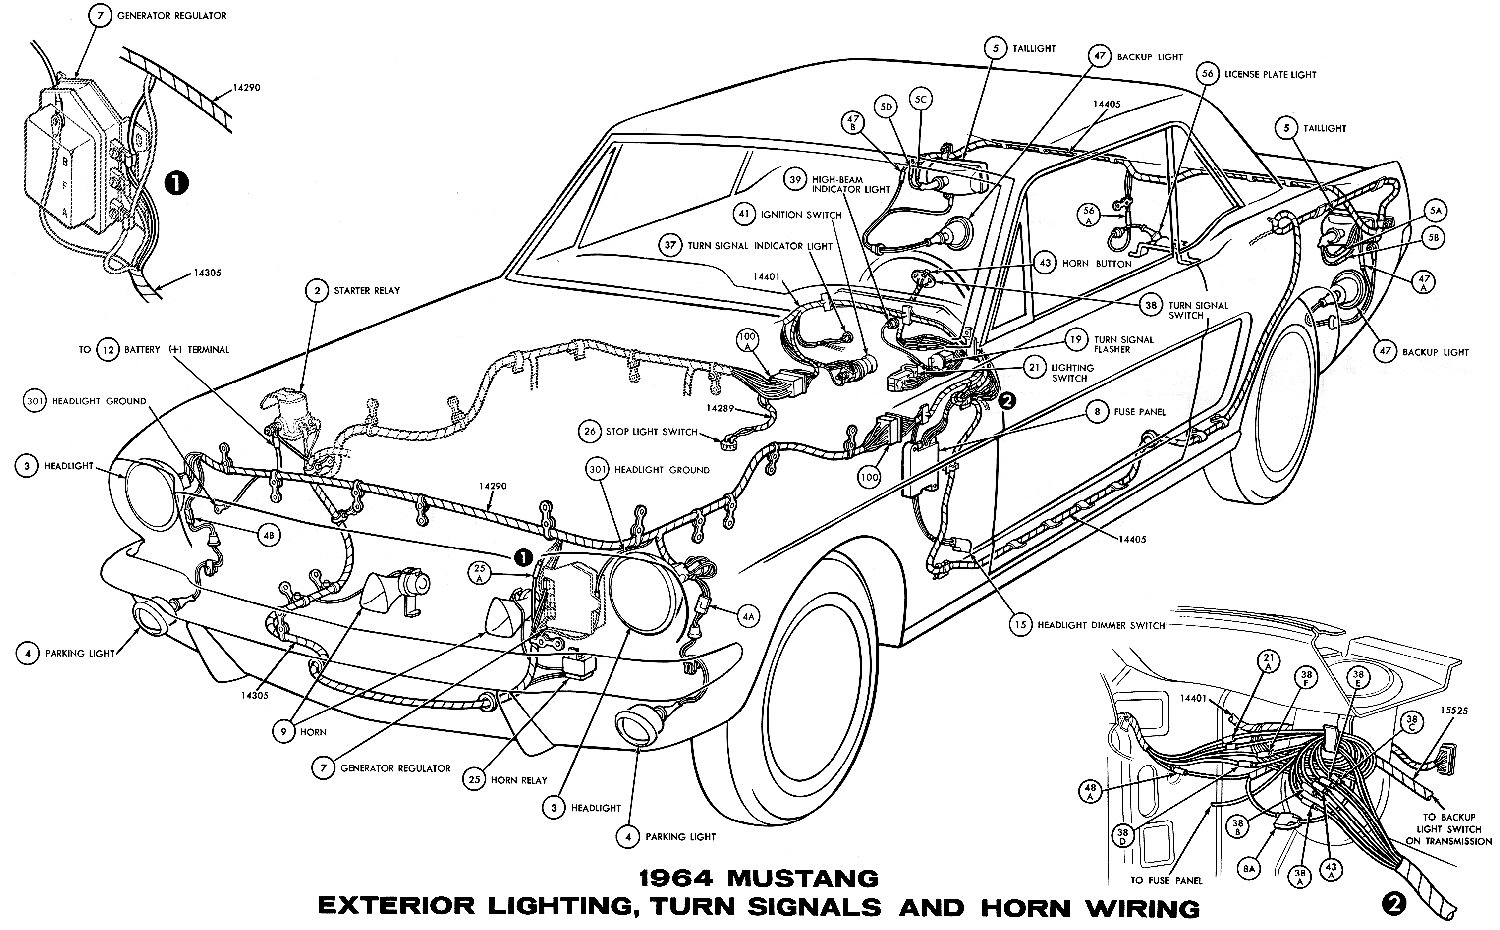 1964h 1964 mustang wiring diagrams average joe restoration 68 mustang headlight wiring diagram at edmiracle.co